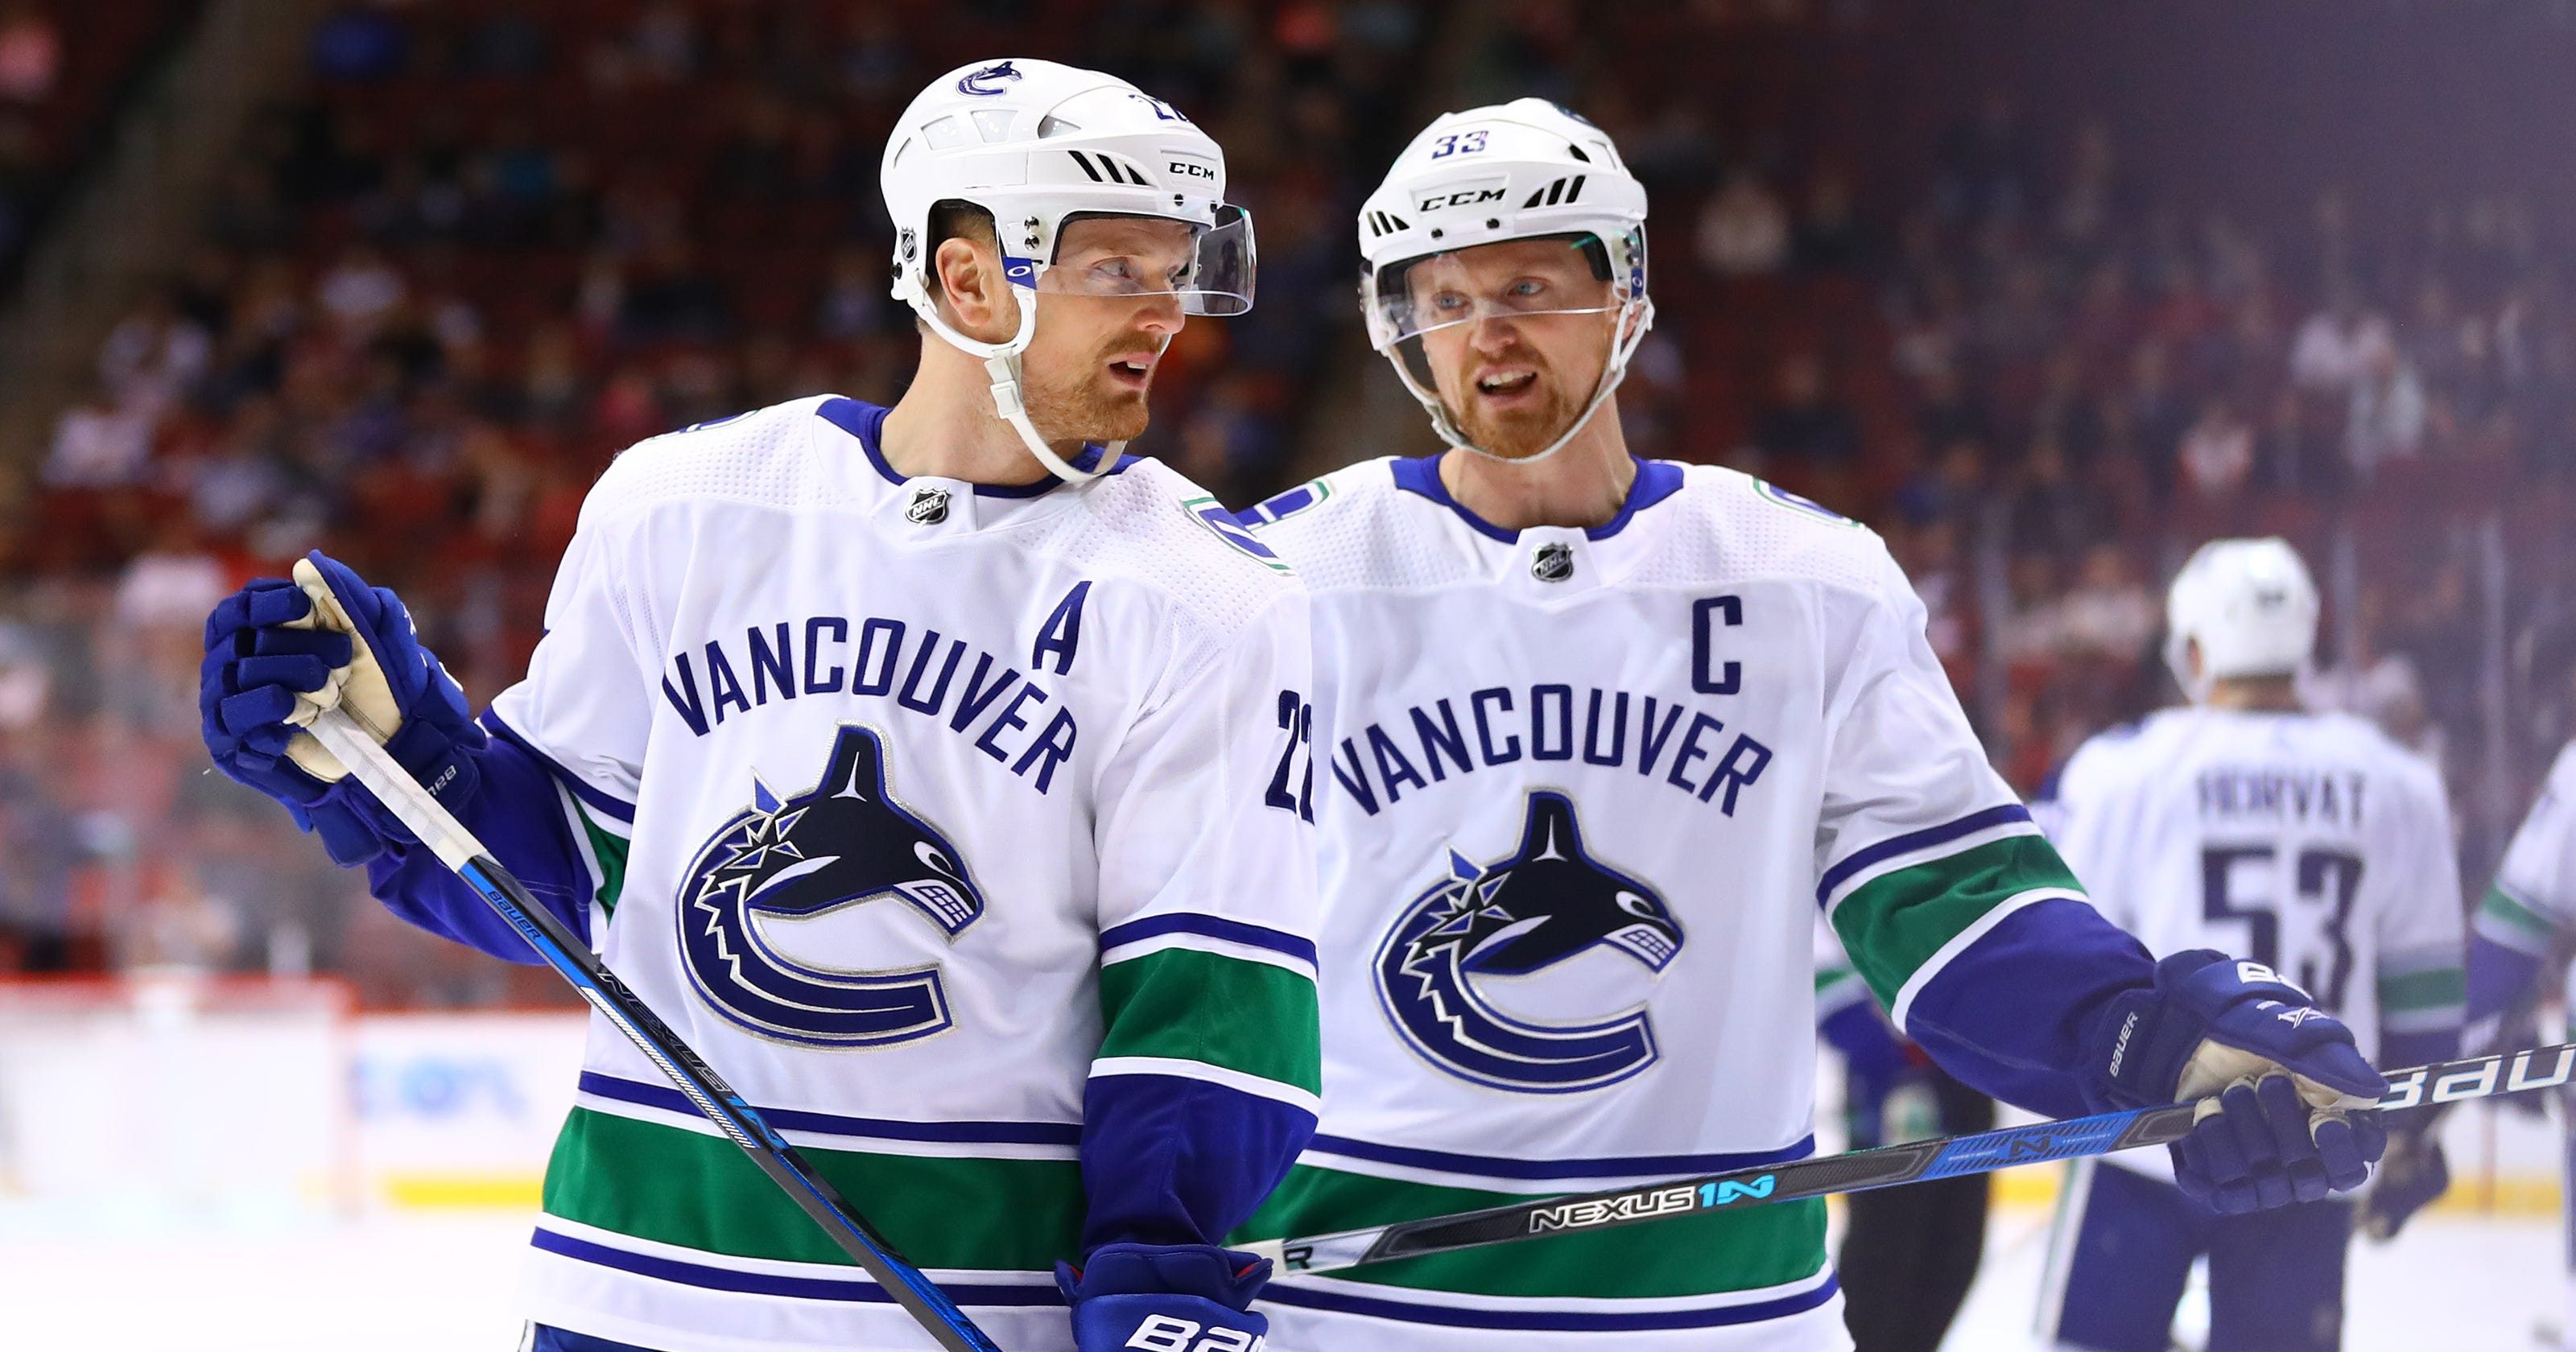 Henrik Daniel Sedin Canucks Icons Announce Retirement